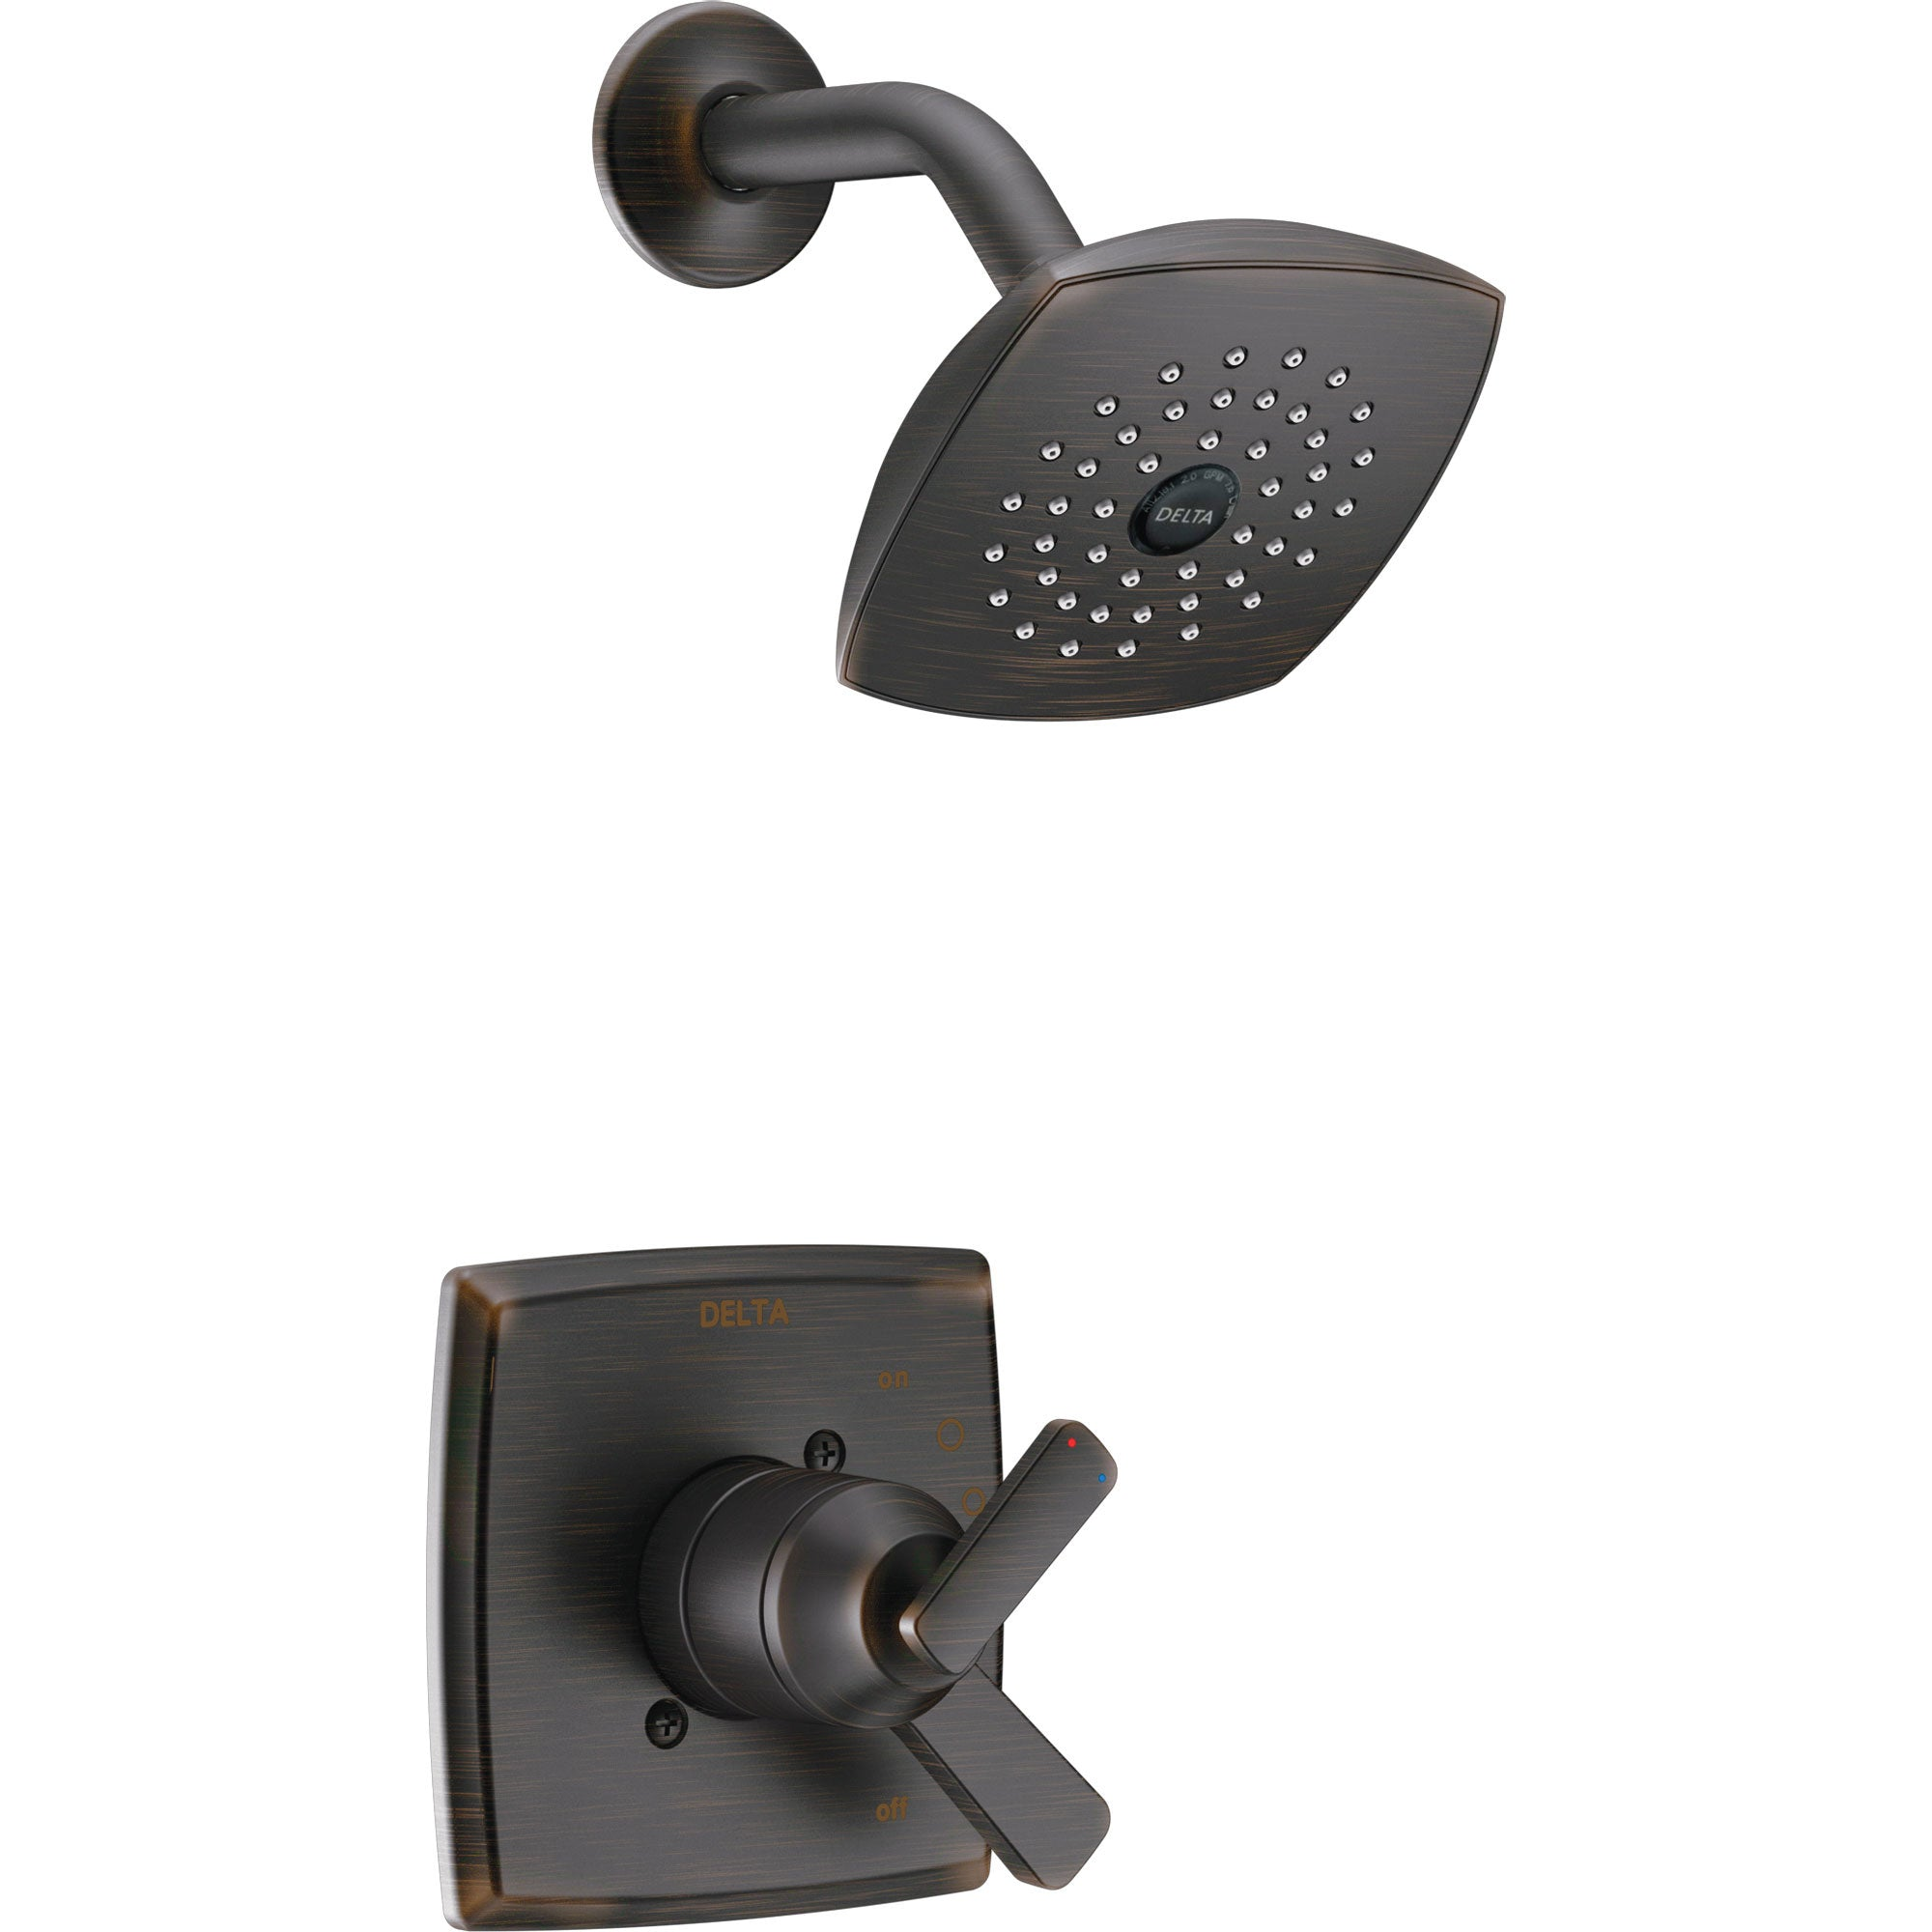 Delta Ashlyn Venetian Bronze Monitor 17 Series Shower Only Faucet with Dual Temperature and Pressure Control INCLUDES Rough-in Valve D1138V